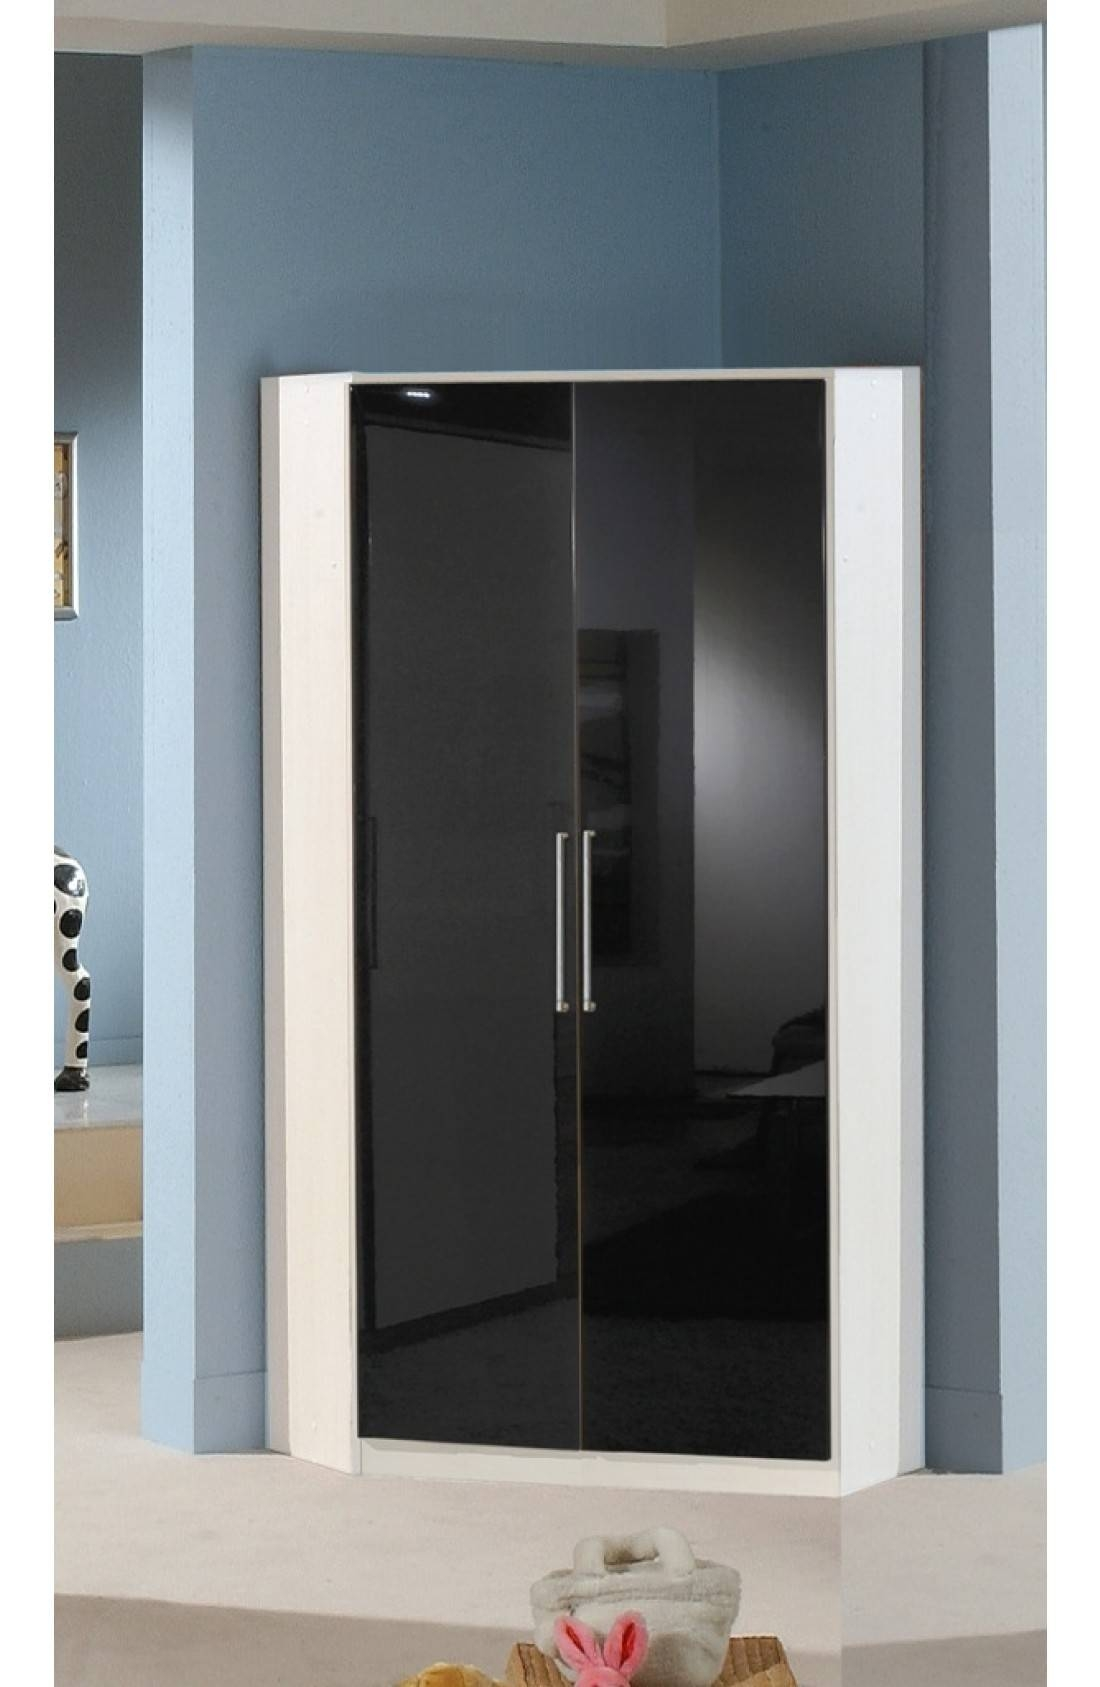 Slumberhaus 'gamma' German Made Modern White & Black Gloss 2 Door Throughout 2 Door Corner Wardrobes (View 11 of 15)